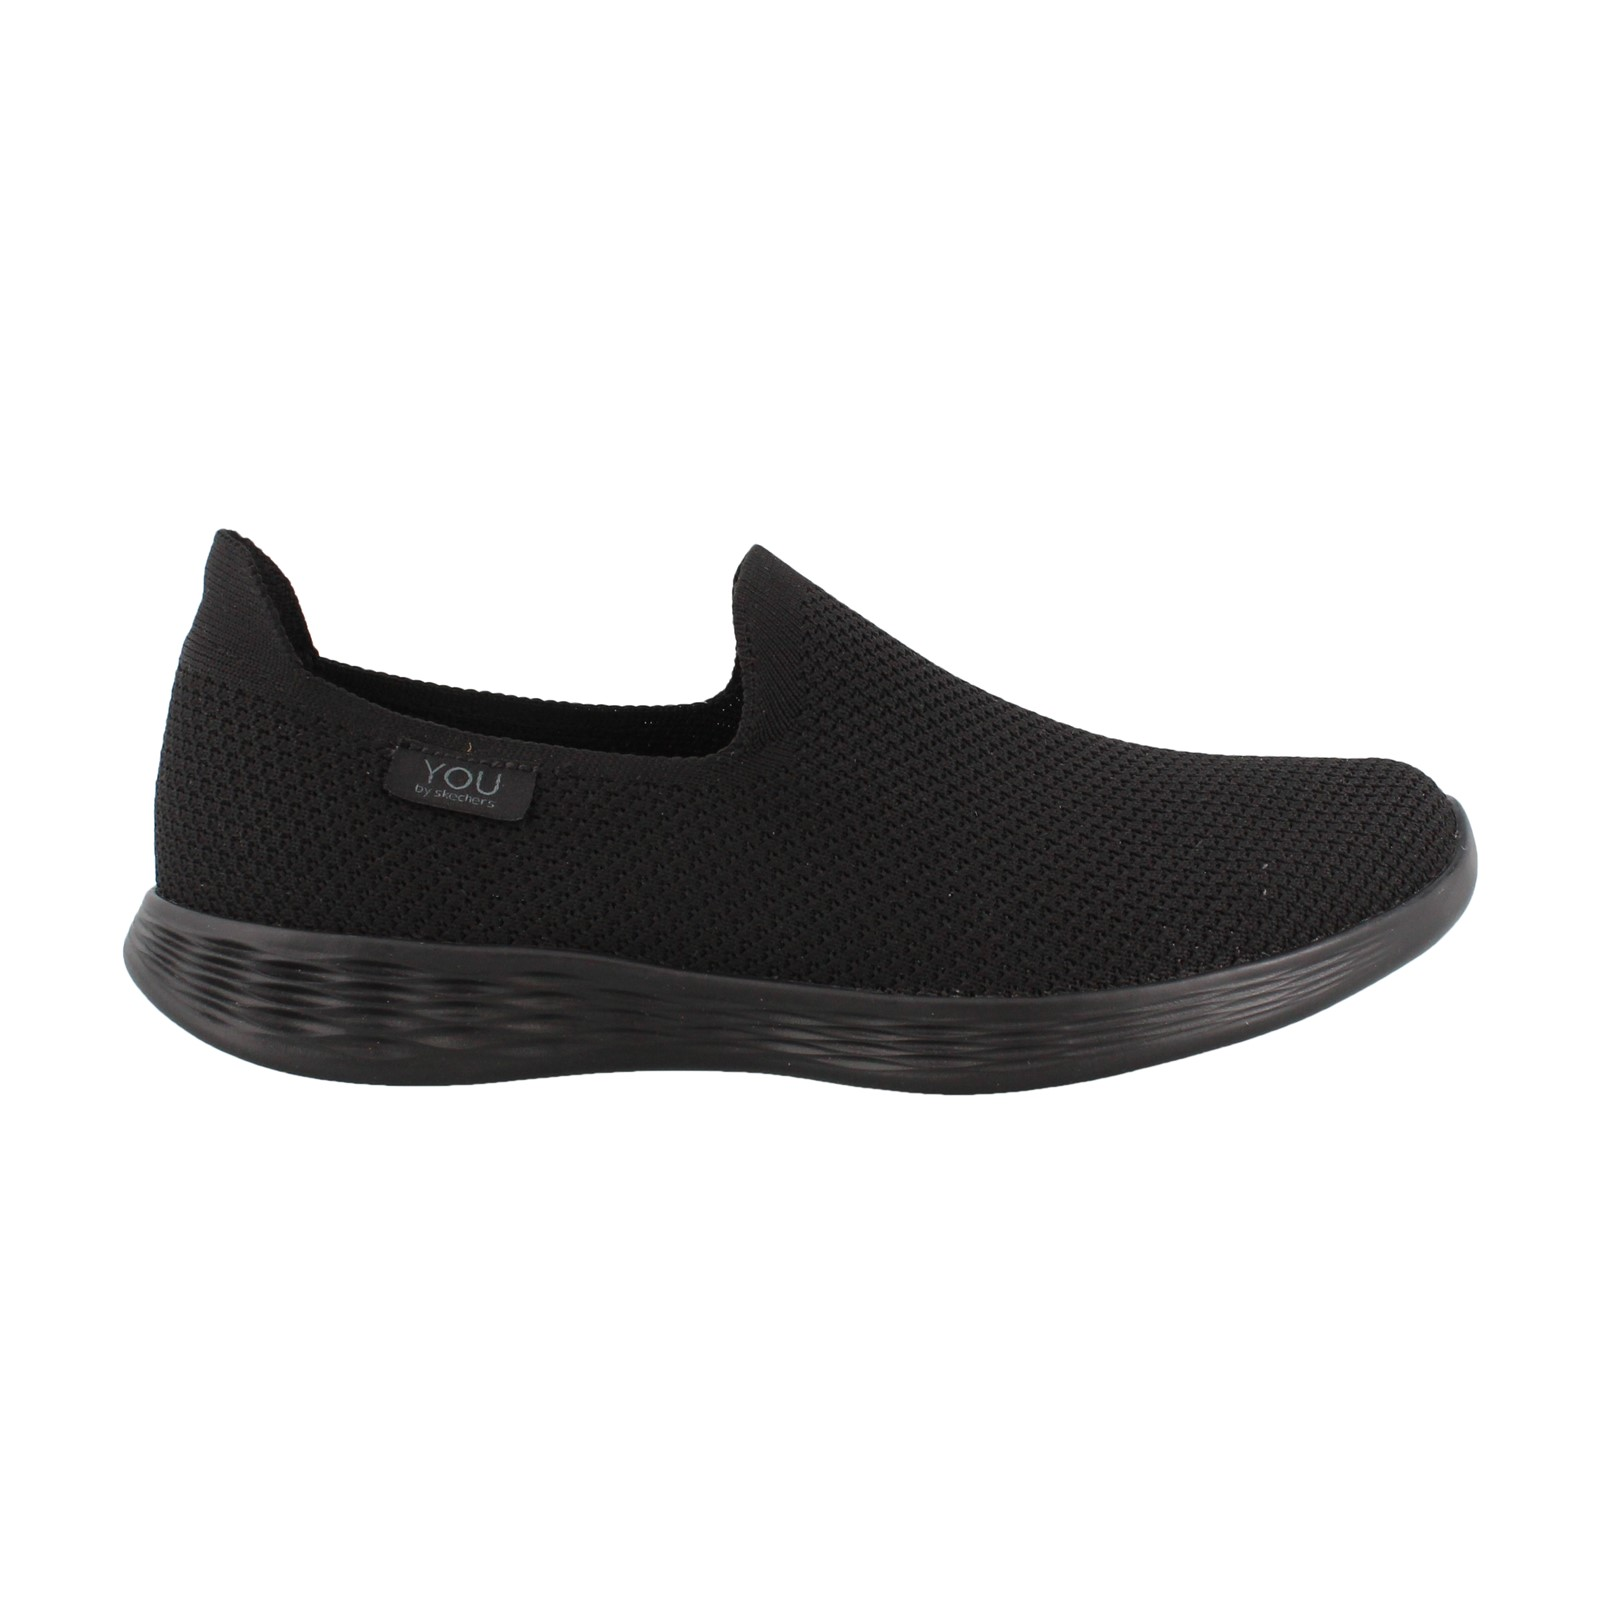 Women's Skechers Performance, You Zen Slip on Shoes Wide Width